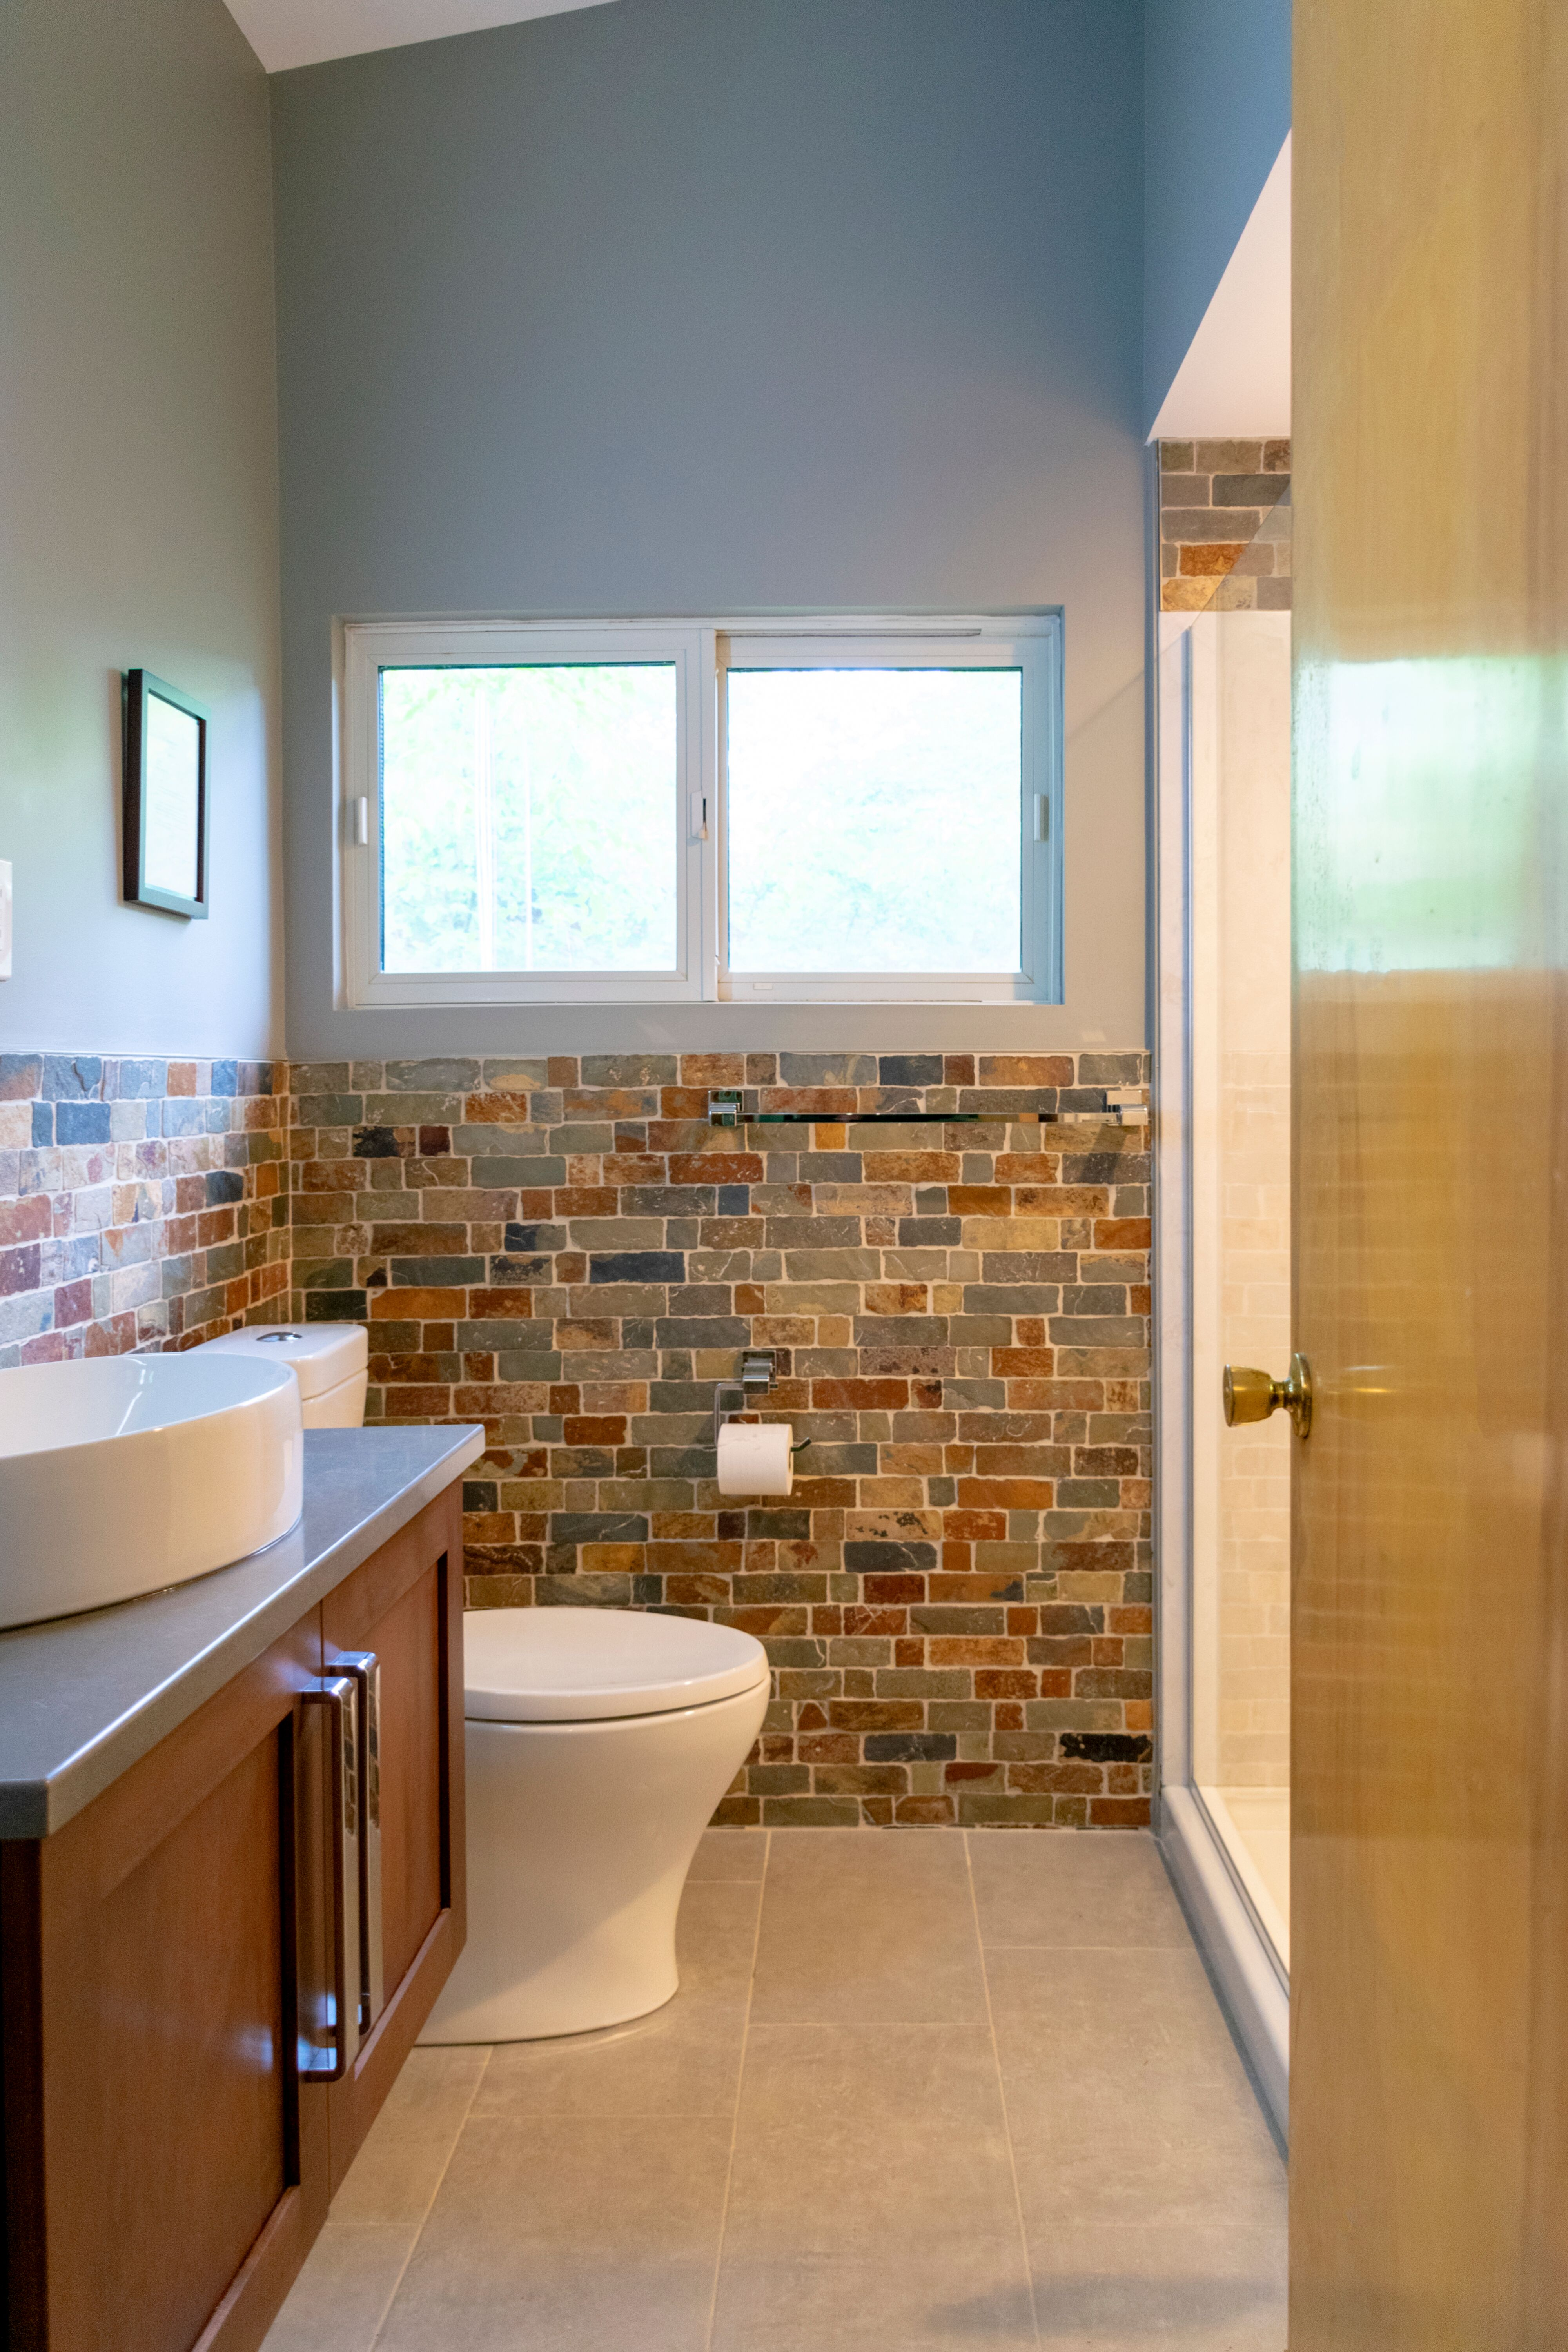 Shelby Township Bathroom Remodel with vaulted ceiling